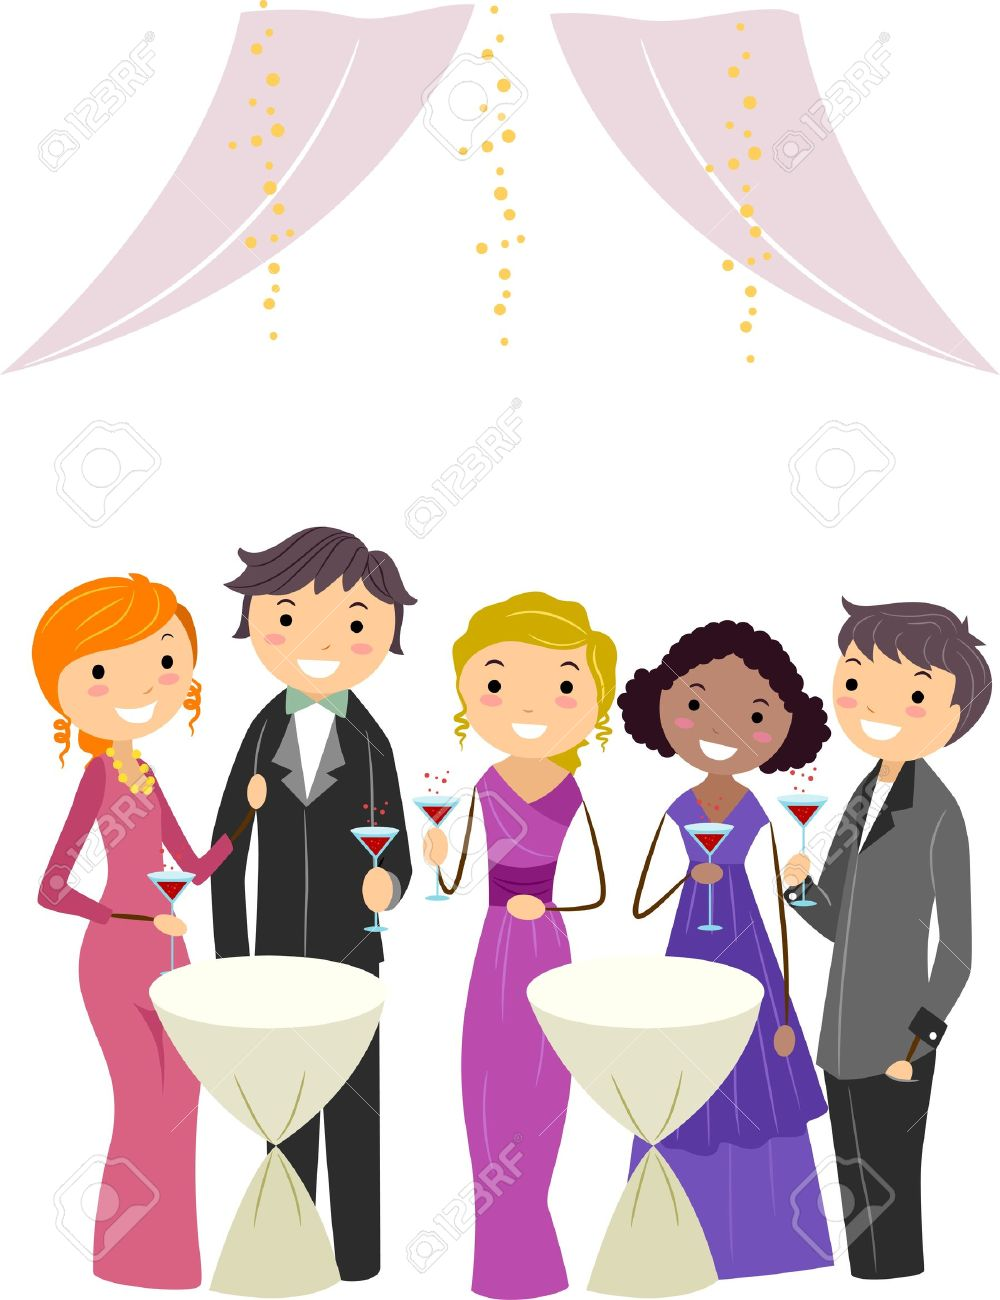 illustration illustration of a group in a formal party